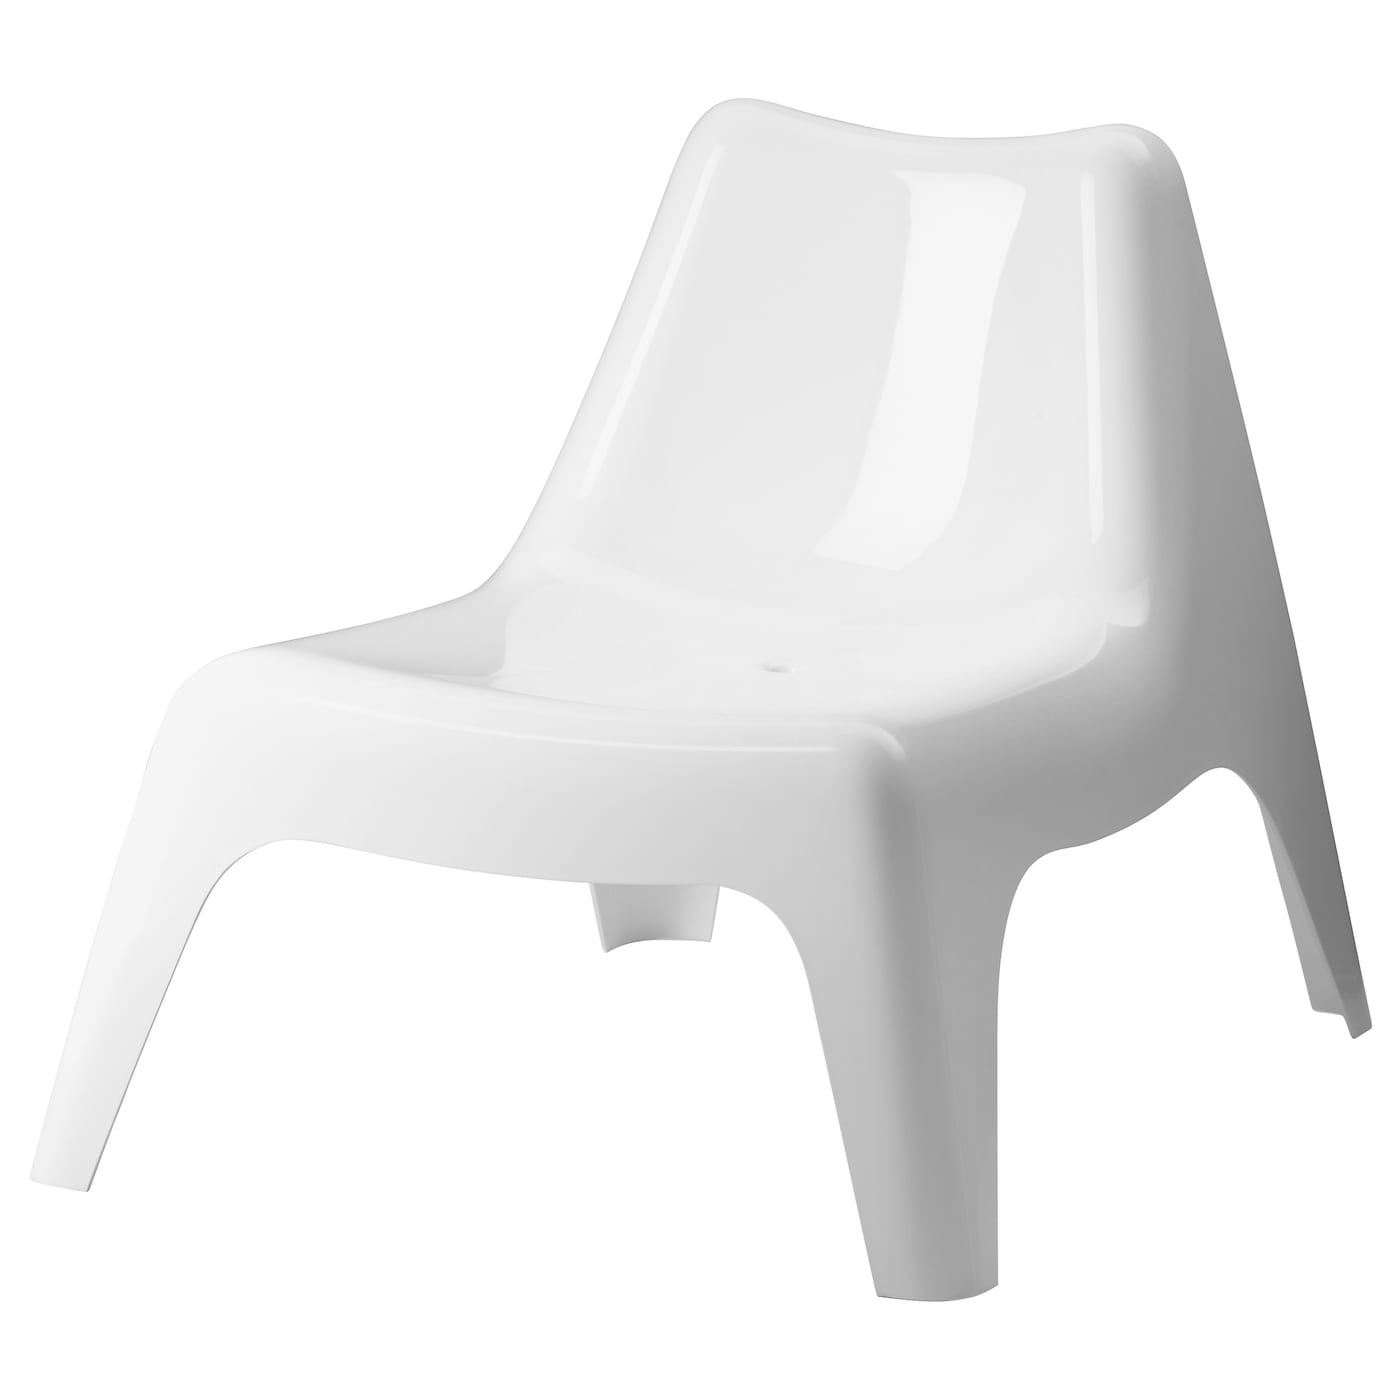 Ikea ps v g easy chair outdoor white ikea - Chaise de jardin plastique blanc ...